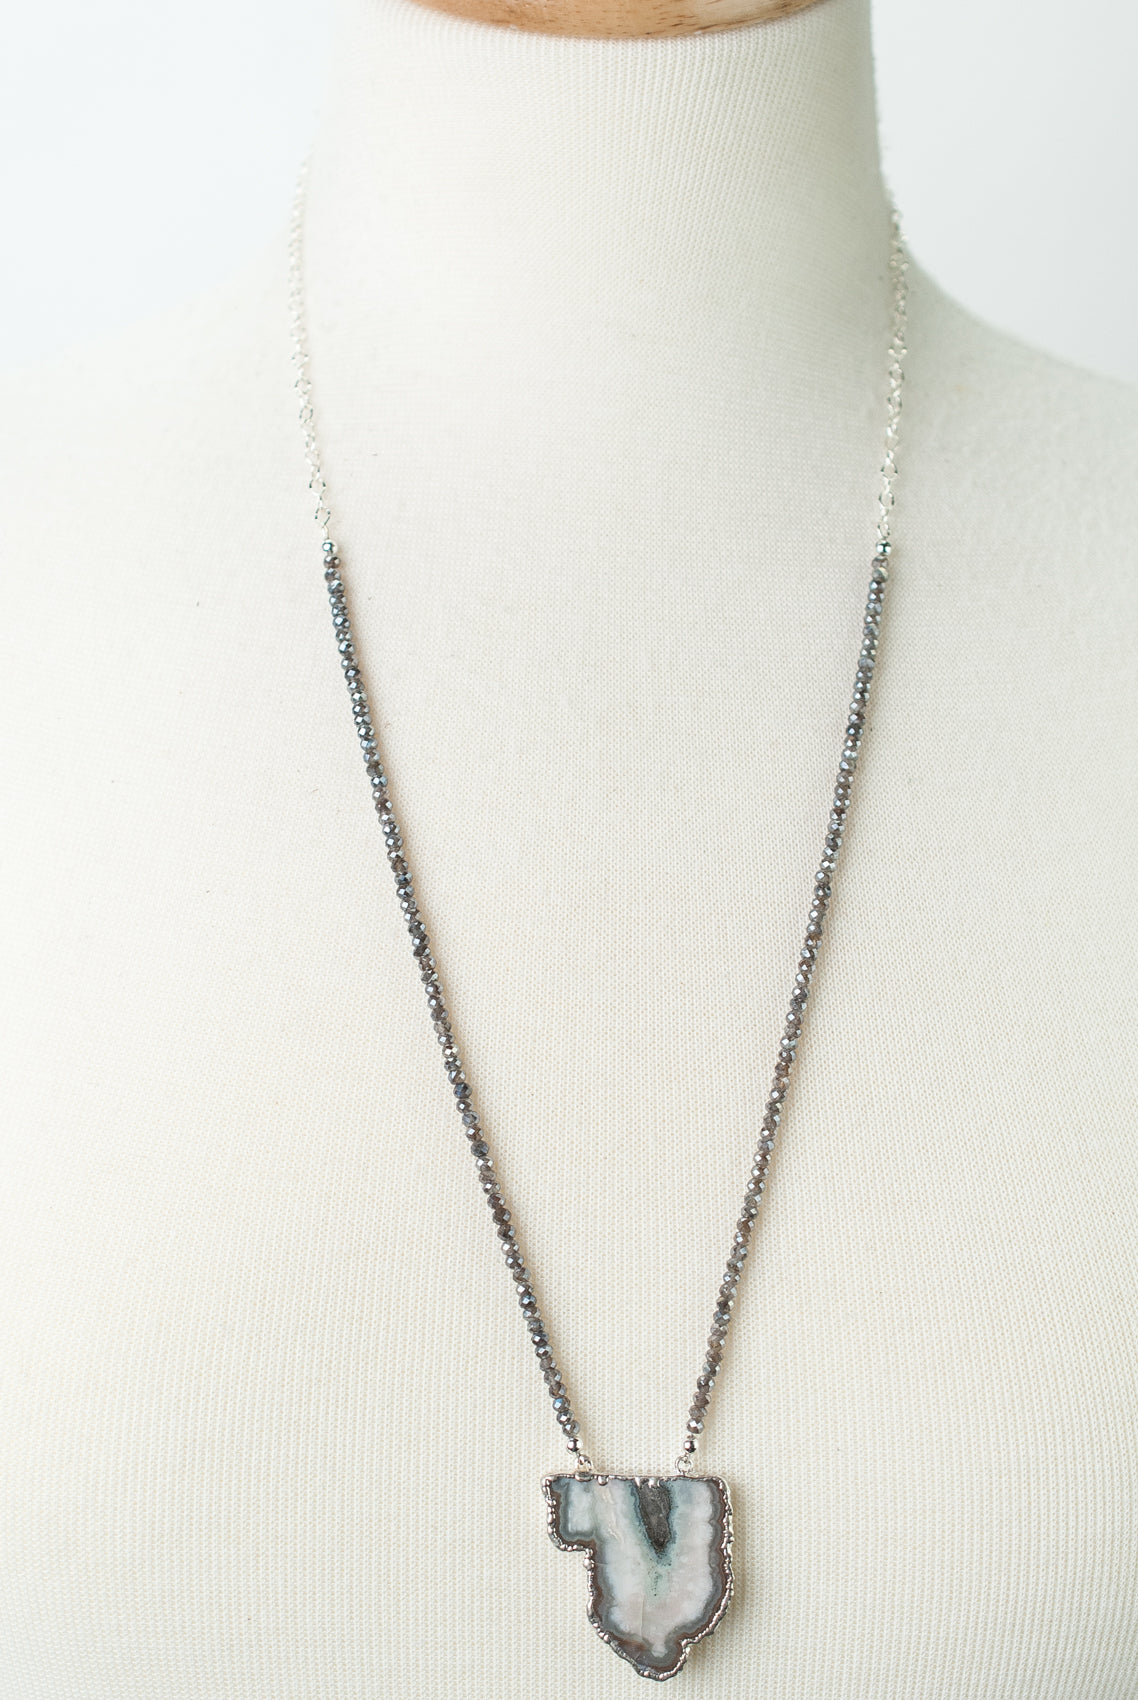 "*One of a Kind 26-28"" Moonstone, Mineral Slice Focal Necklace"